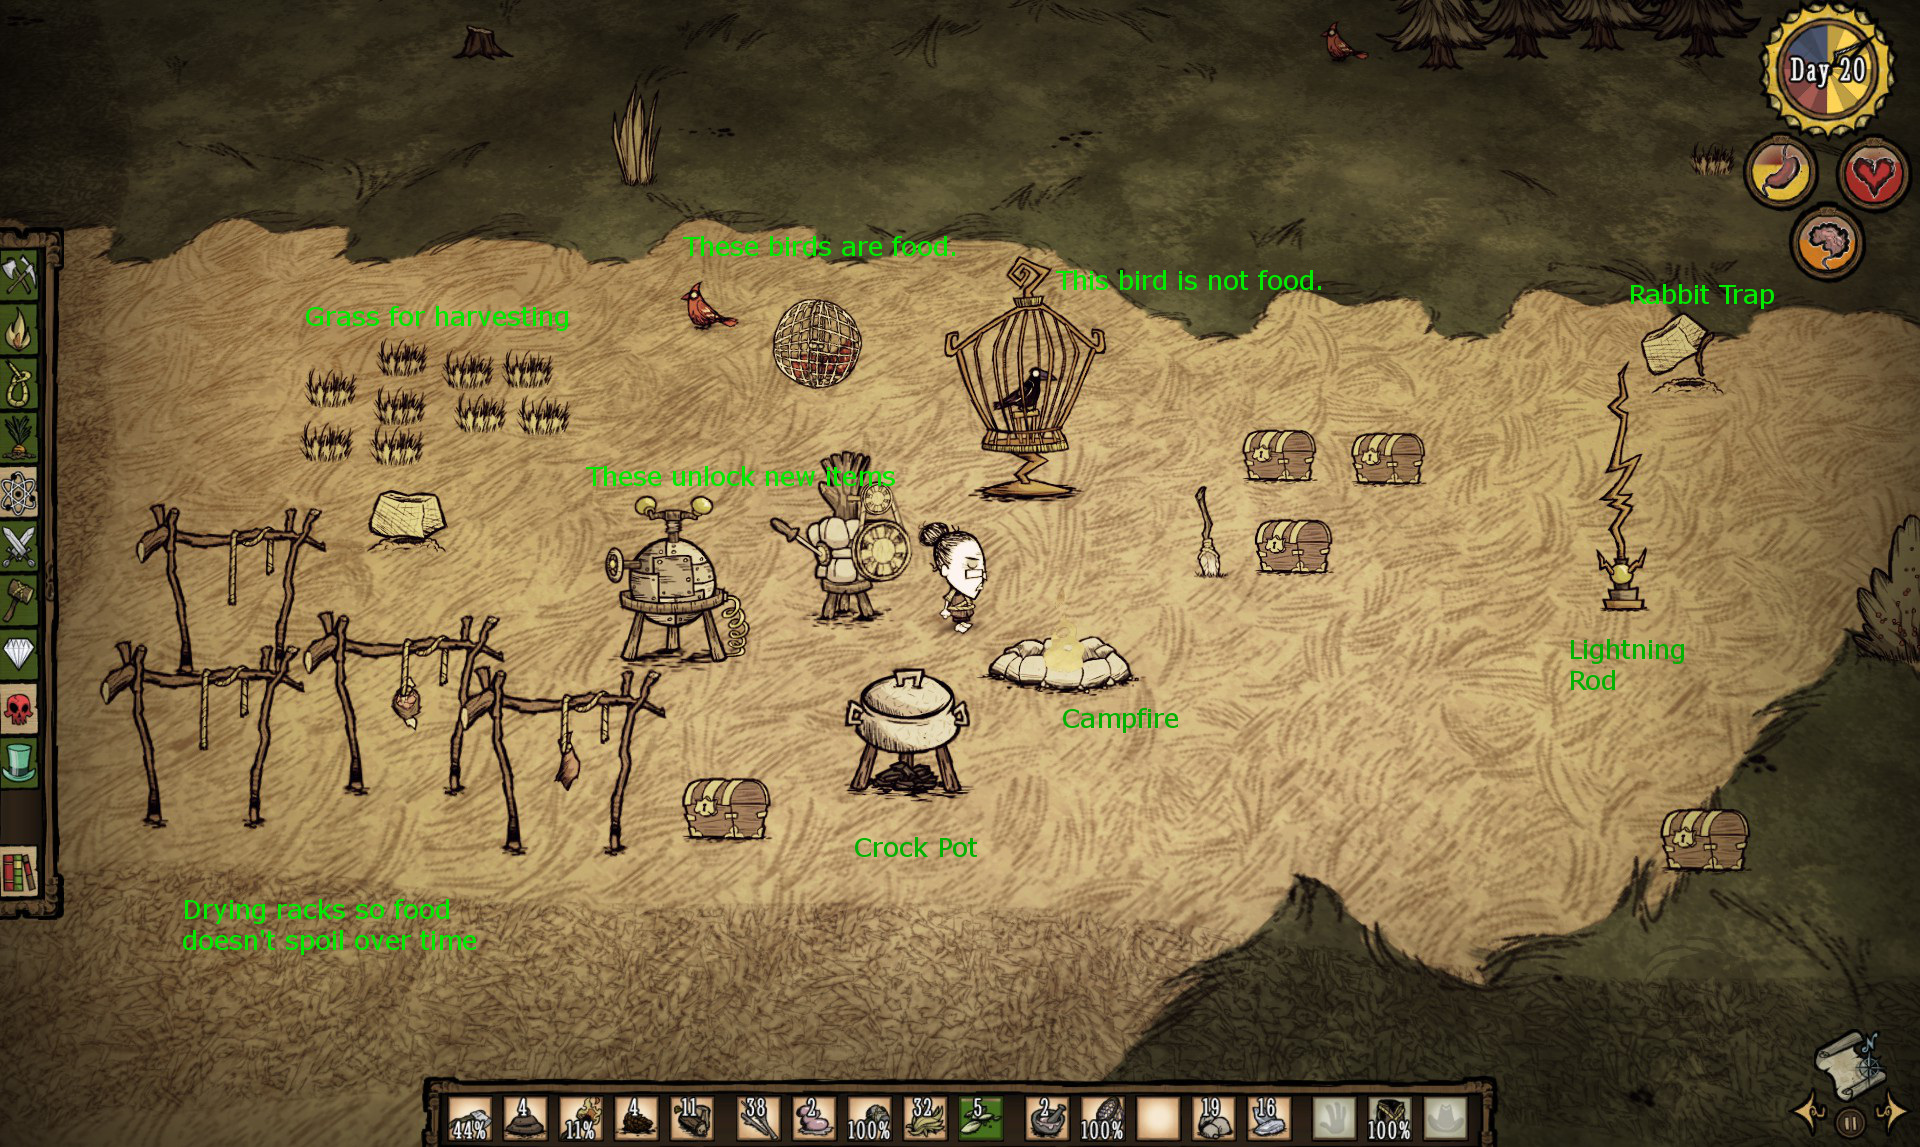 Don't Starve Together: Tips And Tricks